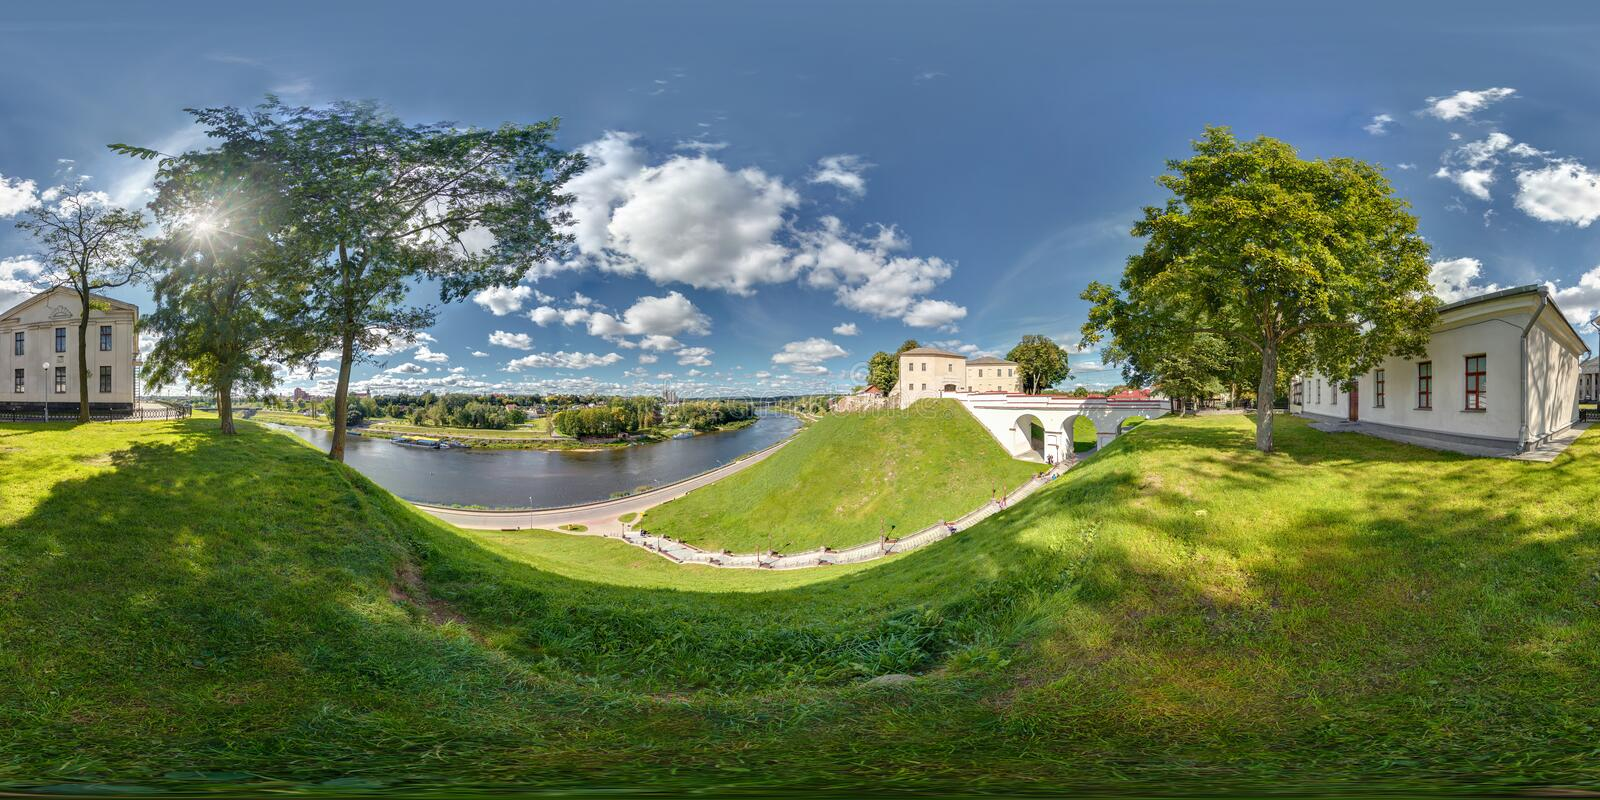 Full 360 degree panorama in equirectangular equidistant spherical projection on the ruins of an ancient medieval castle over the. River neman in sunny day royalty free stock photography